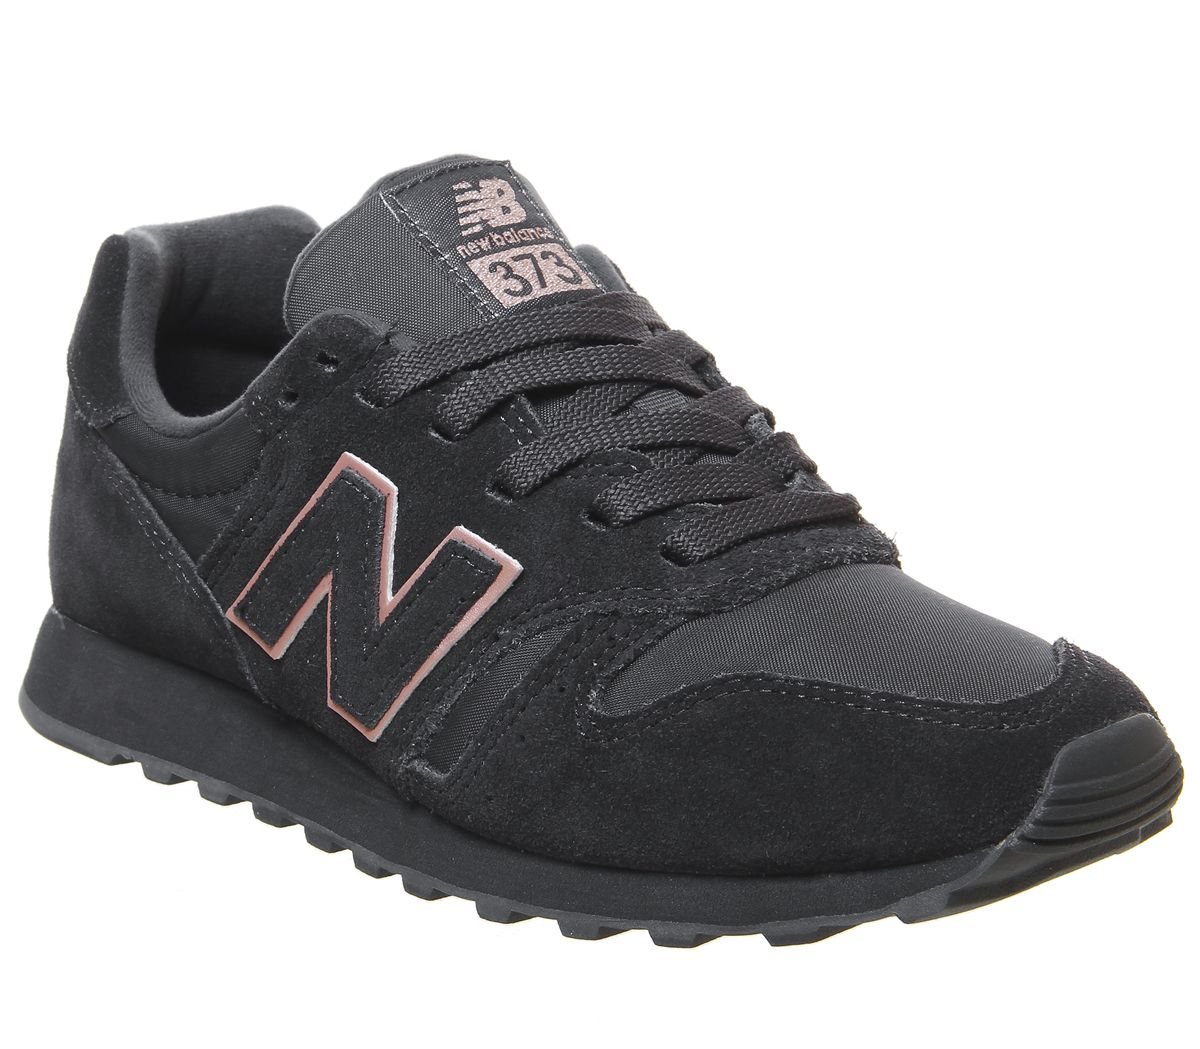 84f052b04f Détails sur Chaussures Femme New Balance Wl373 Baskets Phantom Or Rose  Exclusive Trainers Shoes- afficher le titre d'origine